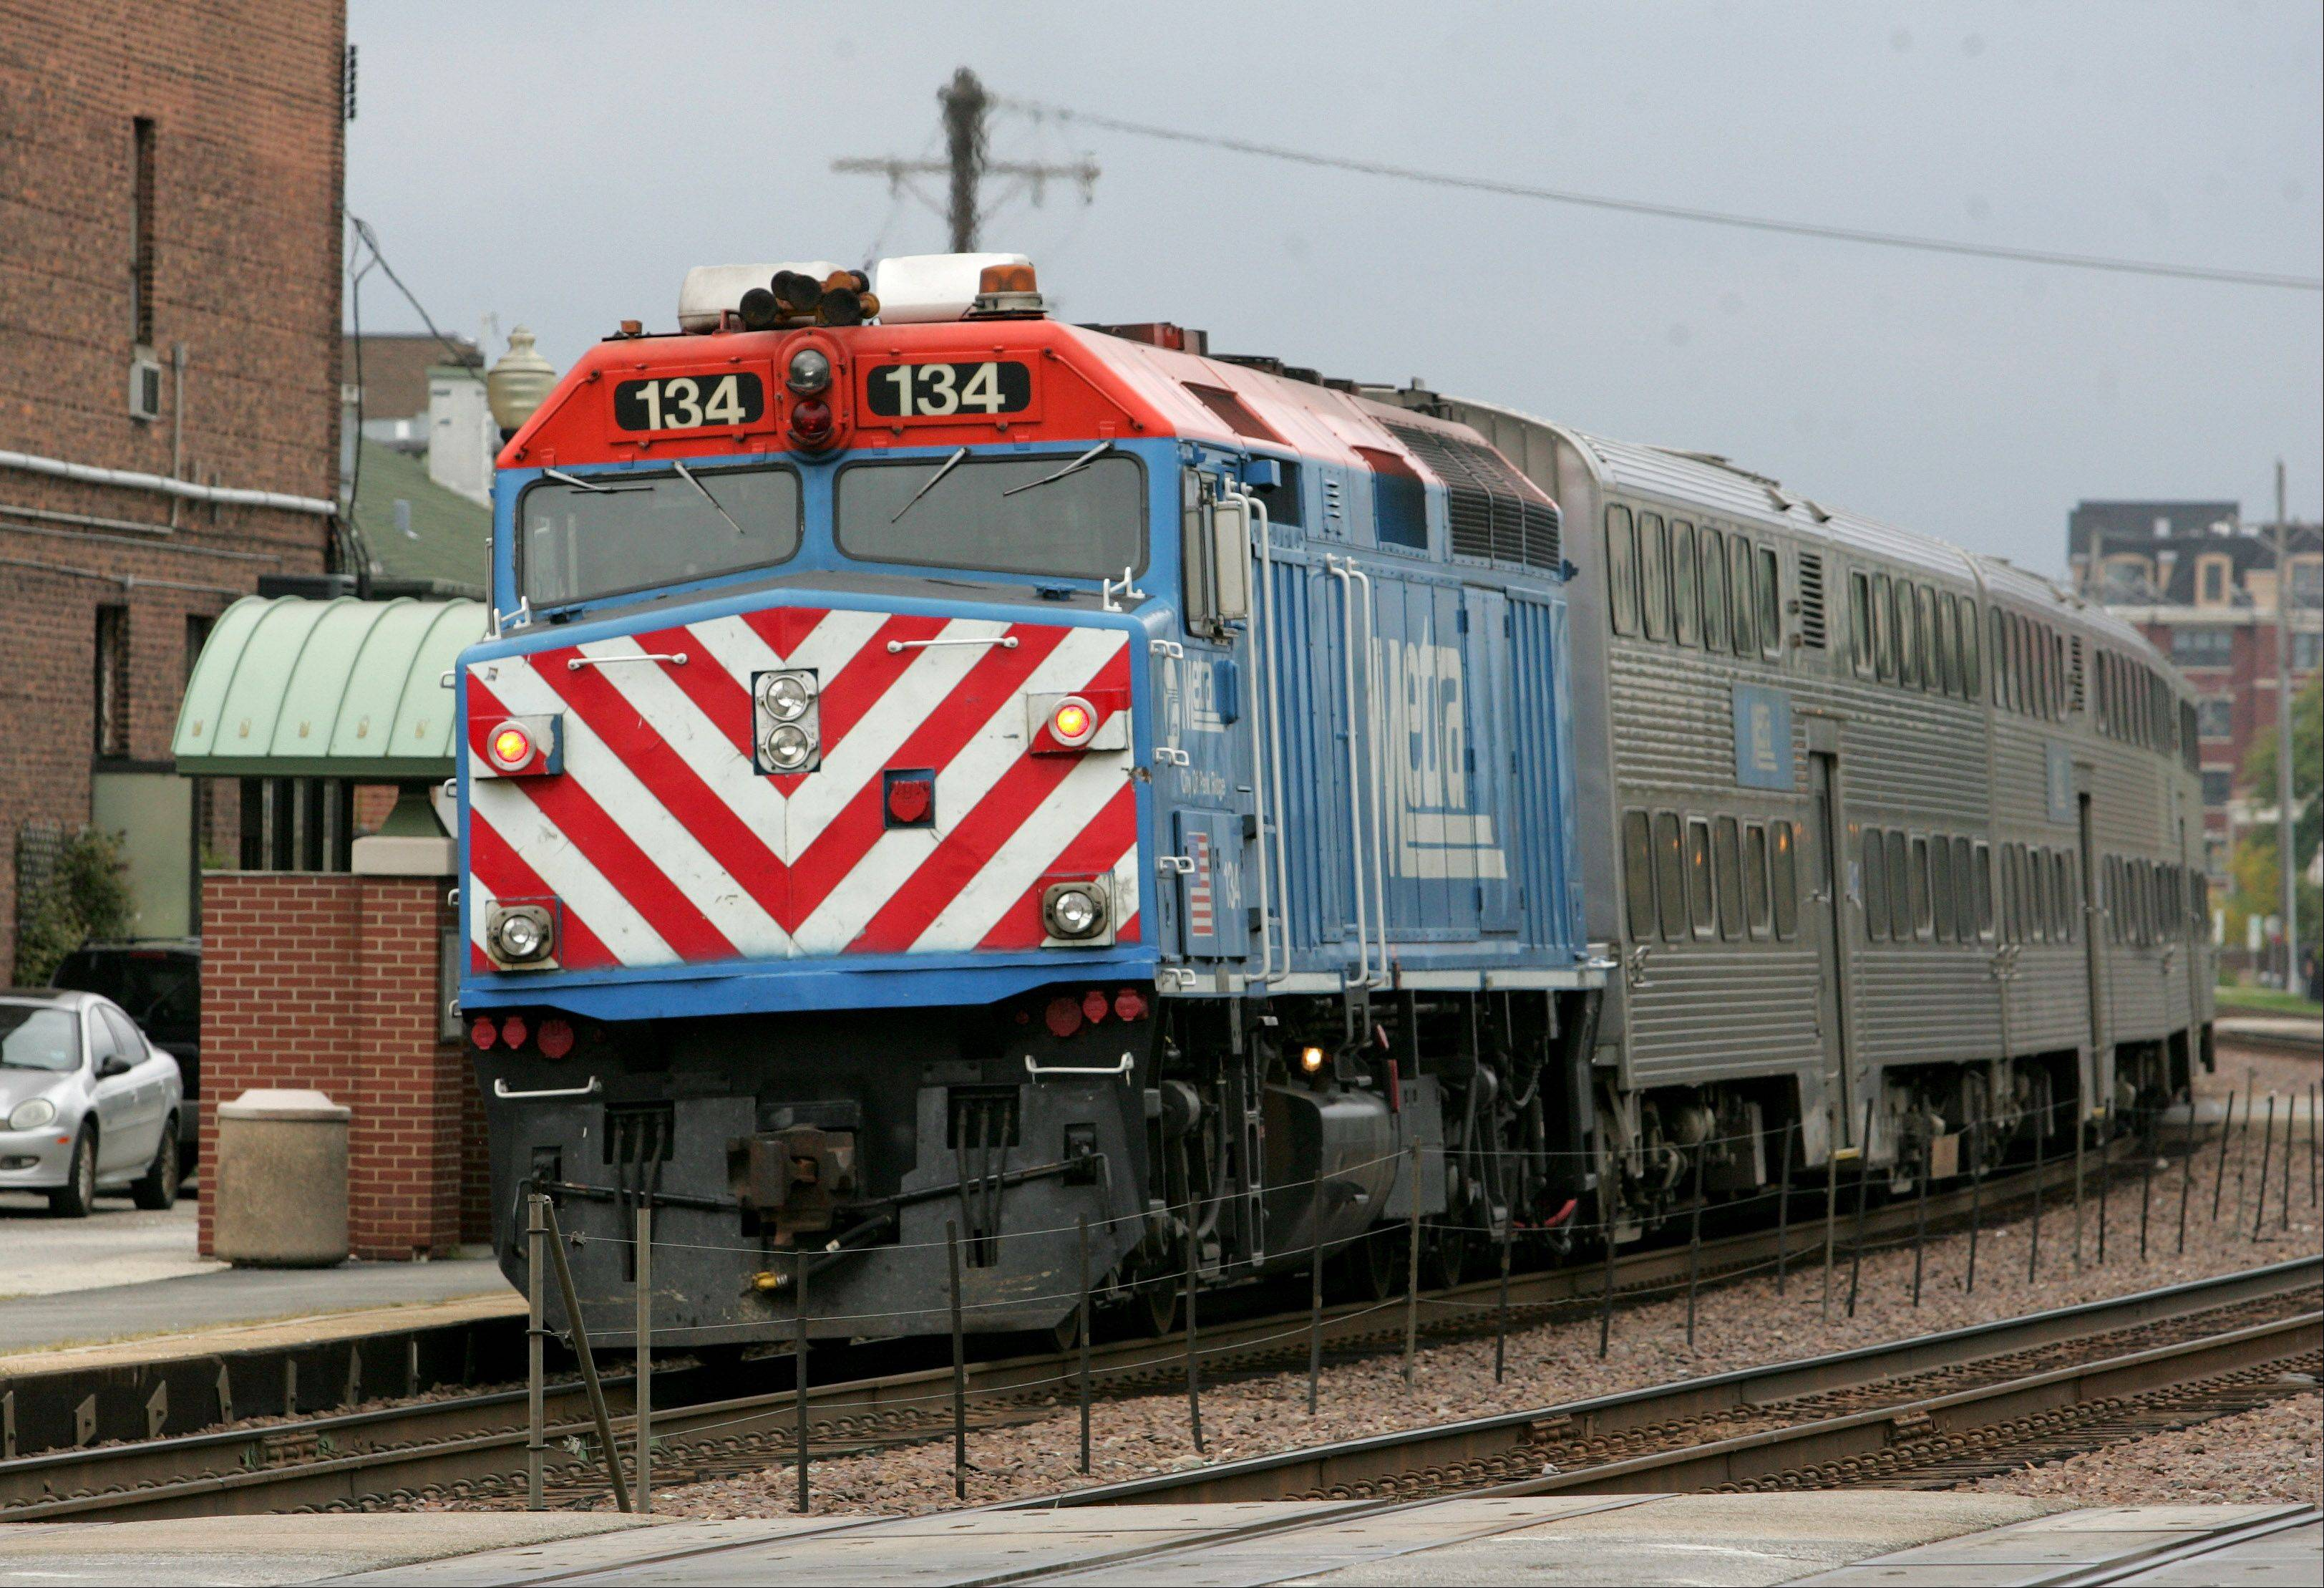 BEV HORNE/bhorne@dailyherald.com A Metra train leaves the Wheaton train station. Old rivalries between the suburbs and Chicago erupted Friday as Regional Transportation Authority leaders feuded over who should get $6 million -- Pace, Metra or the CTA.